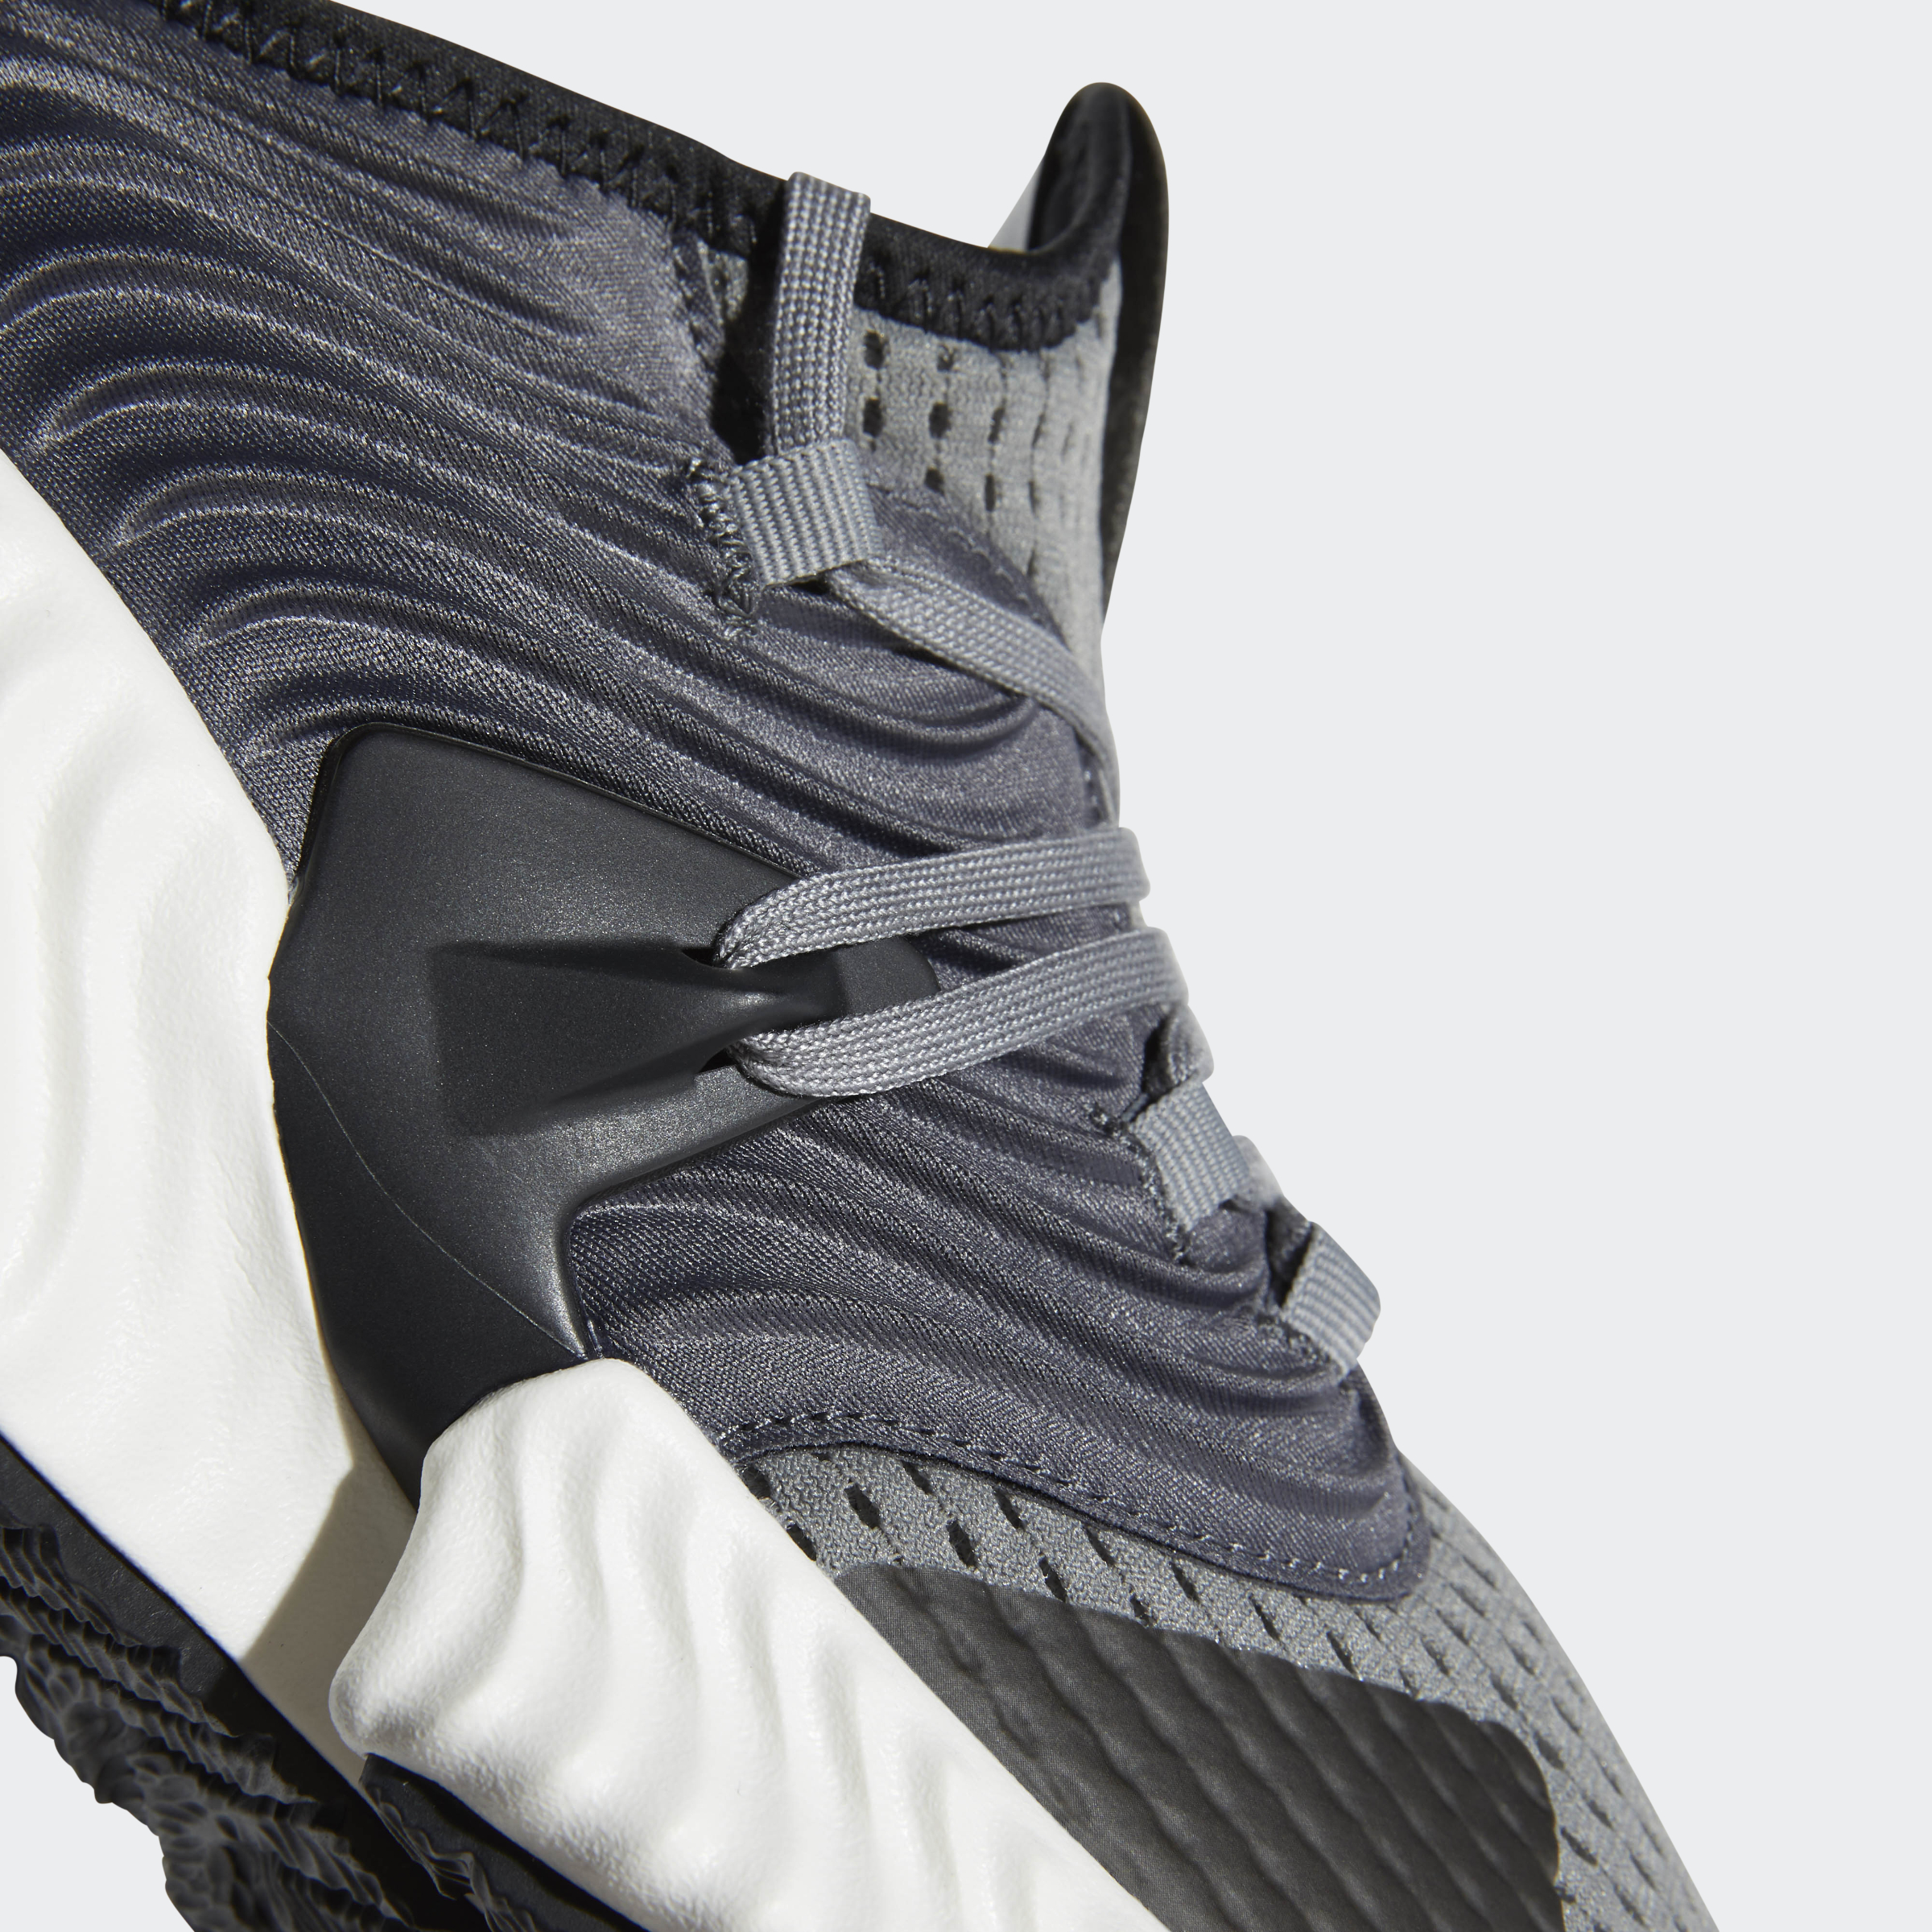 adidas-Alphabounce-Instinct-Clima-Shoes-Men-039-s-Athletic-amp-Sneakers miniature 15